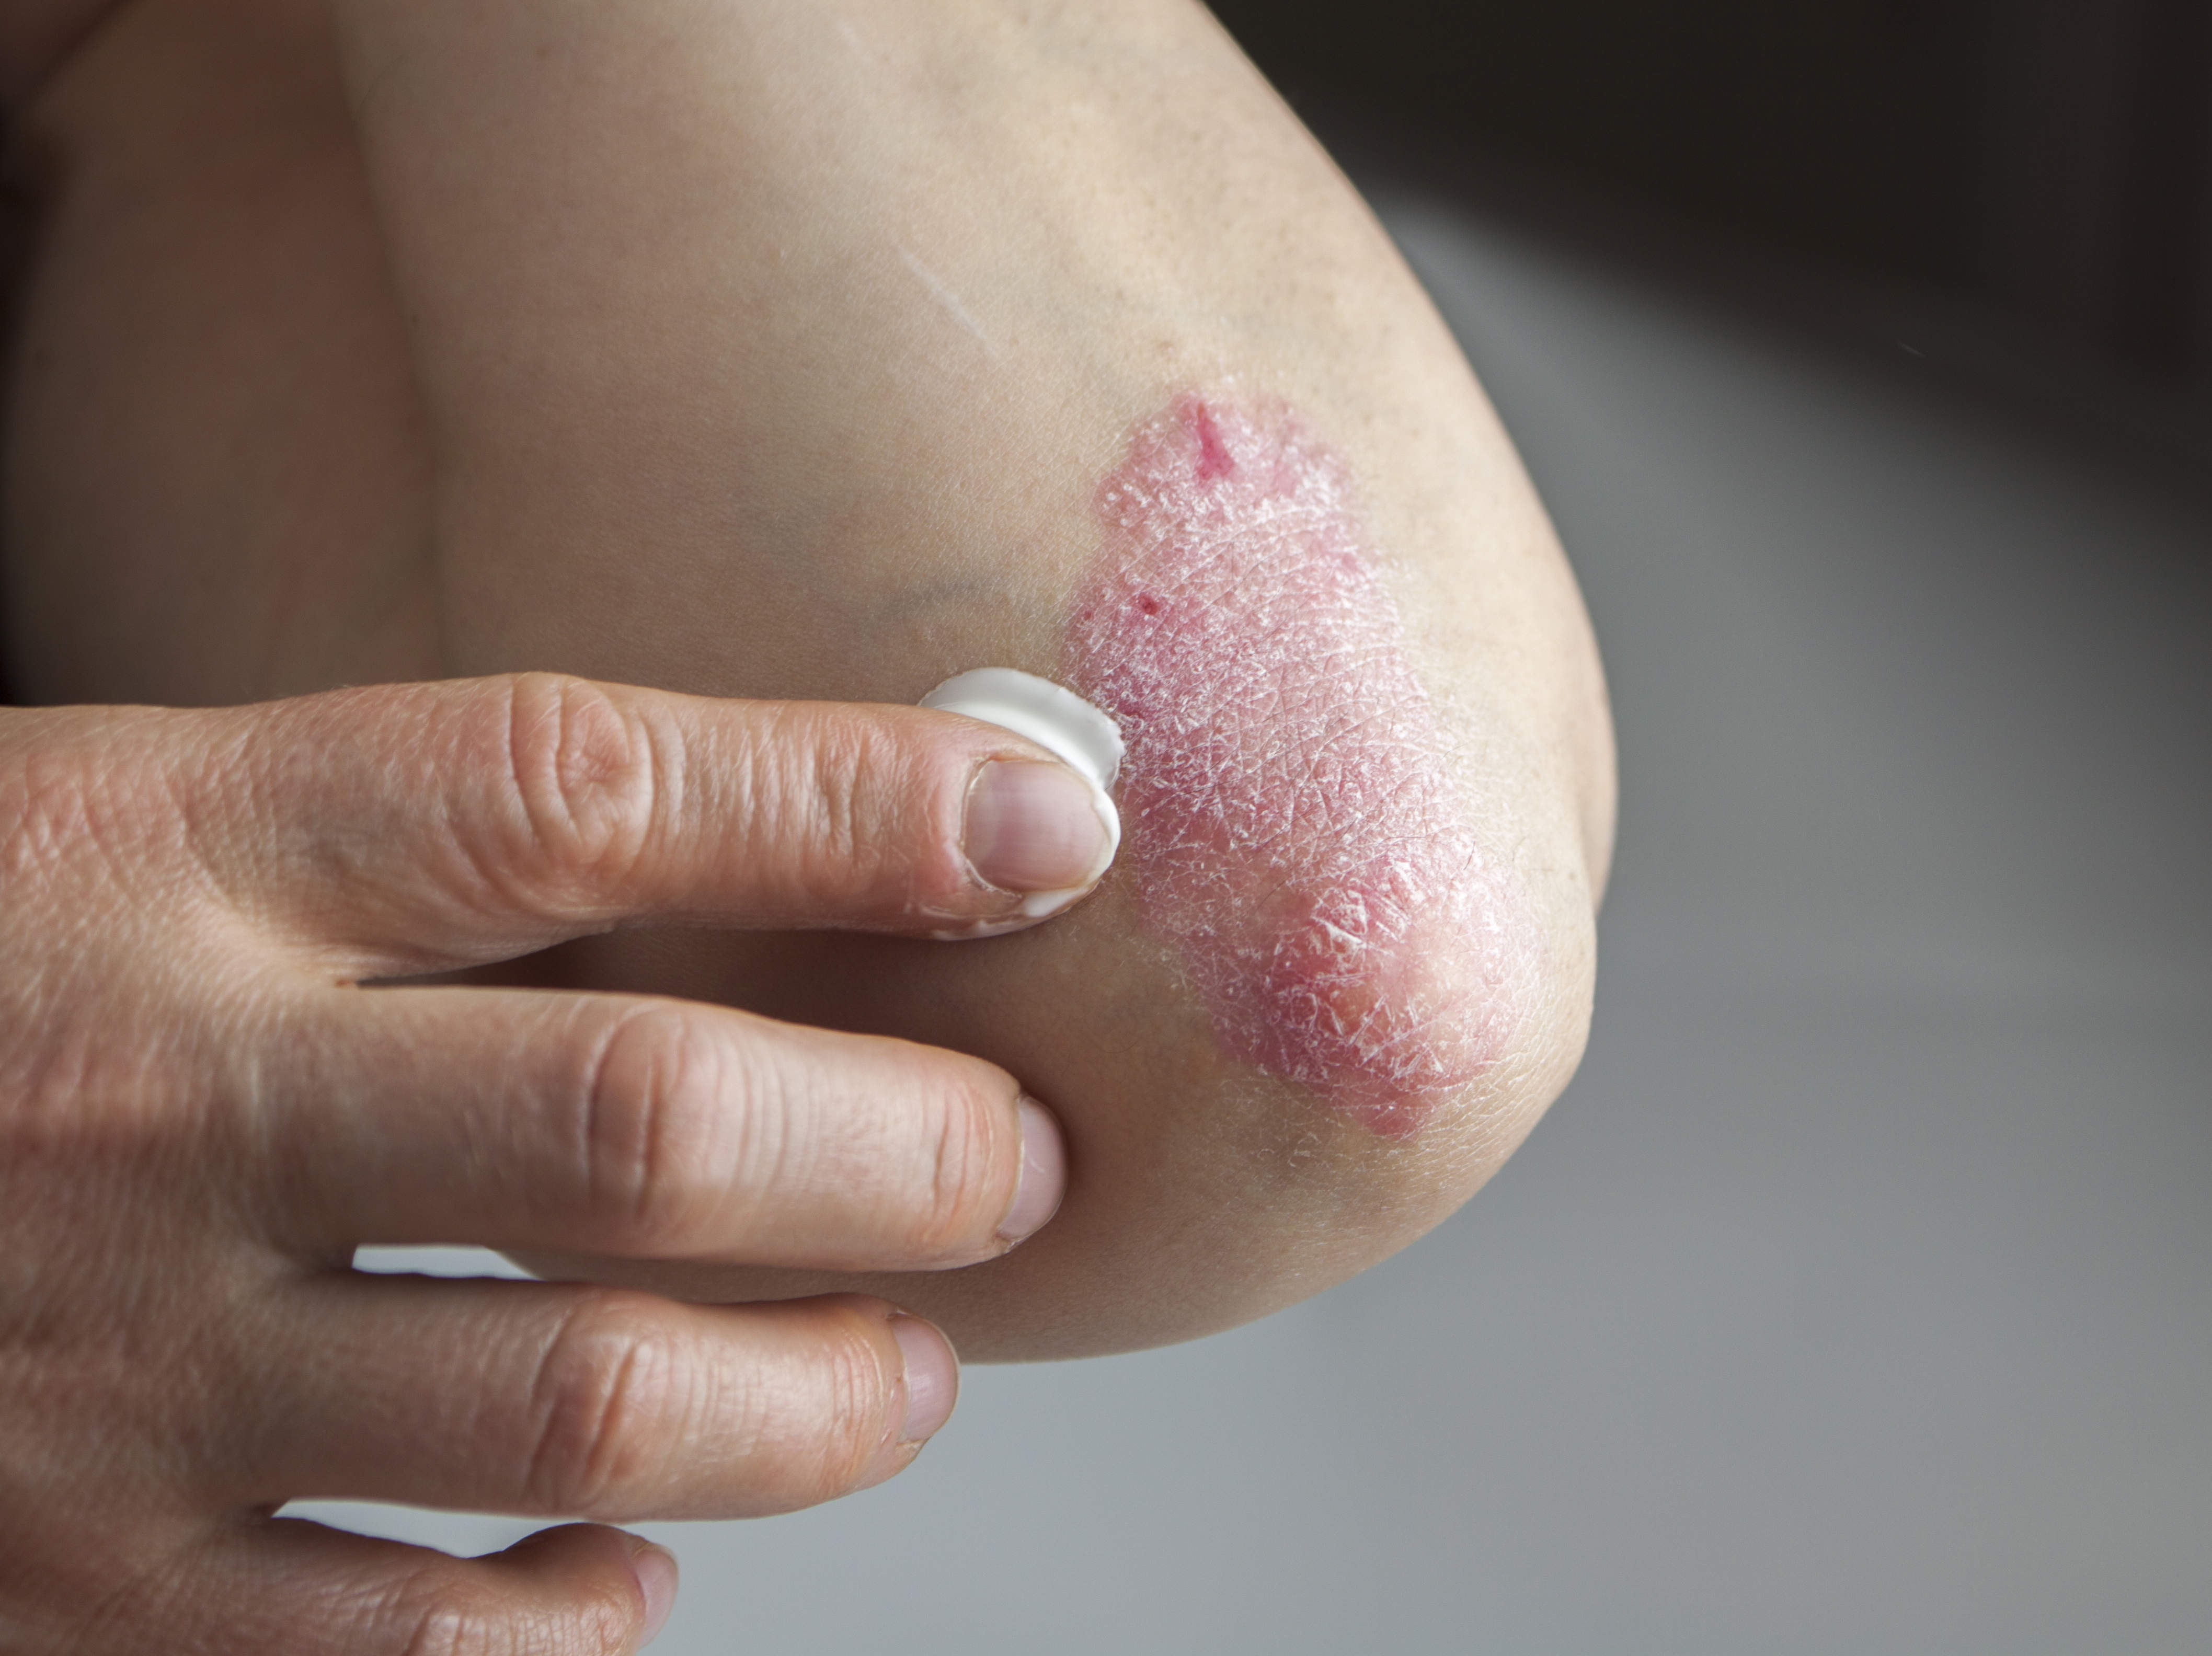 Itchy Skin Causes and Symptoms - Health